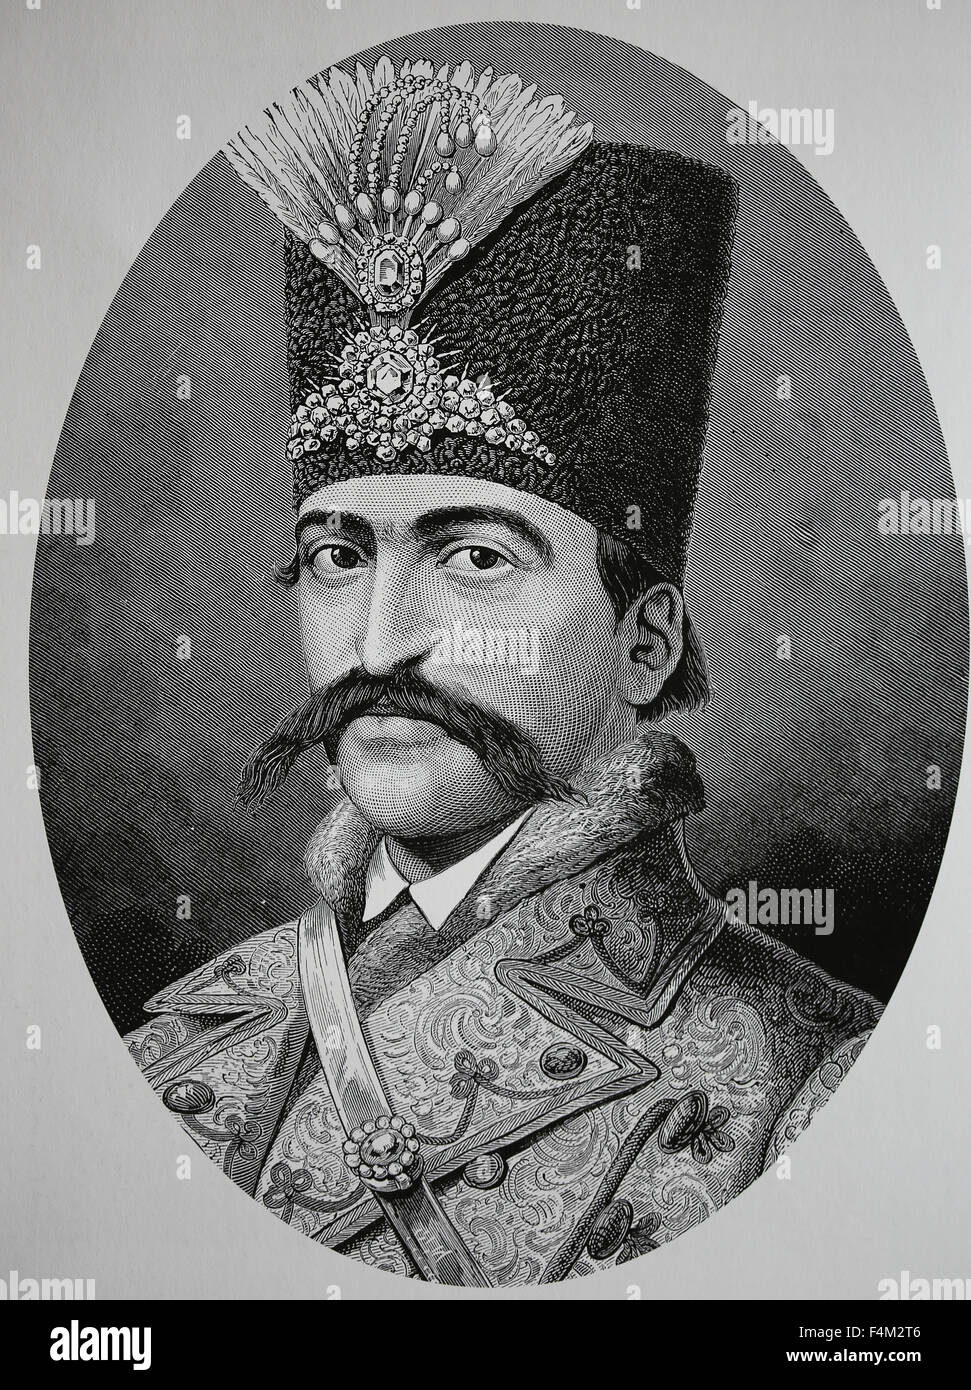 Naser al-Din Shah Qajar (1831-1896). King of Persia from 1848-1896. He was assassinated. Qajar Dynasty. Engraving. - Stock Image